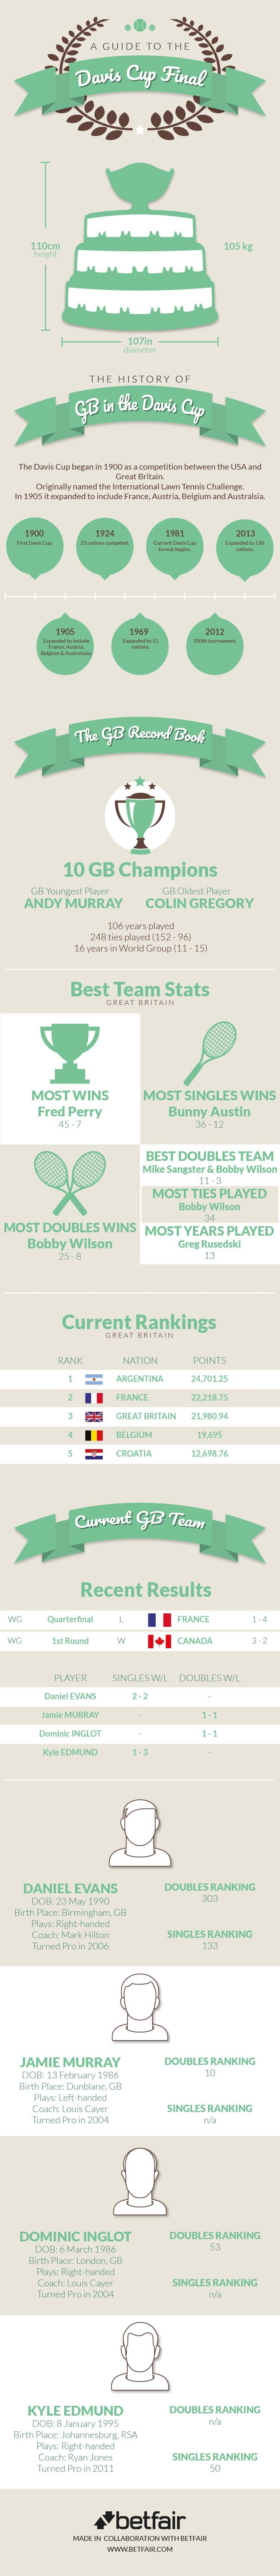 2017 davis cup final infographic